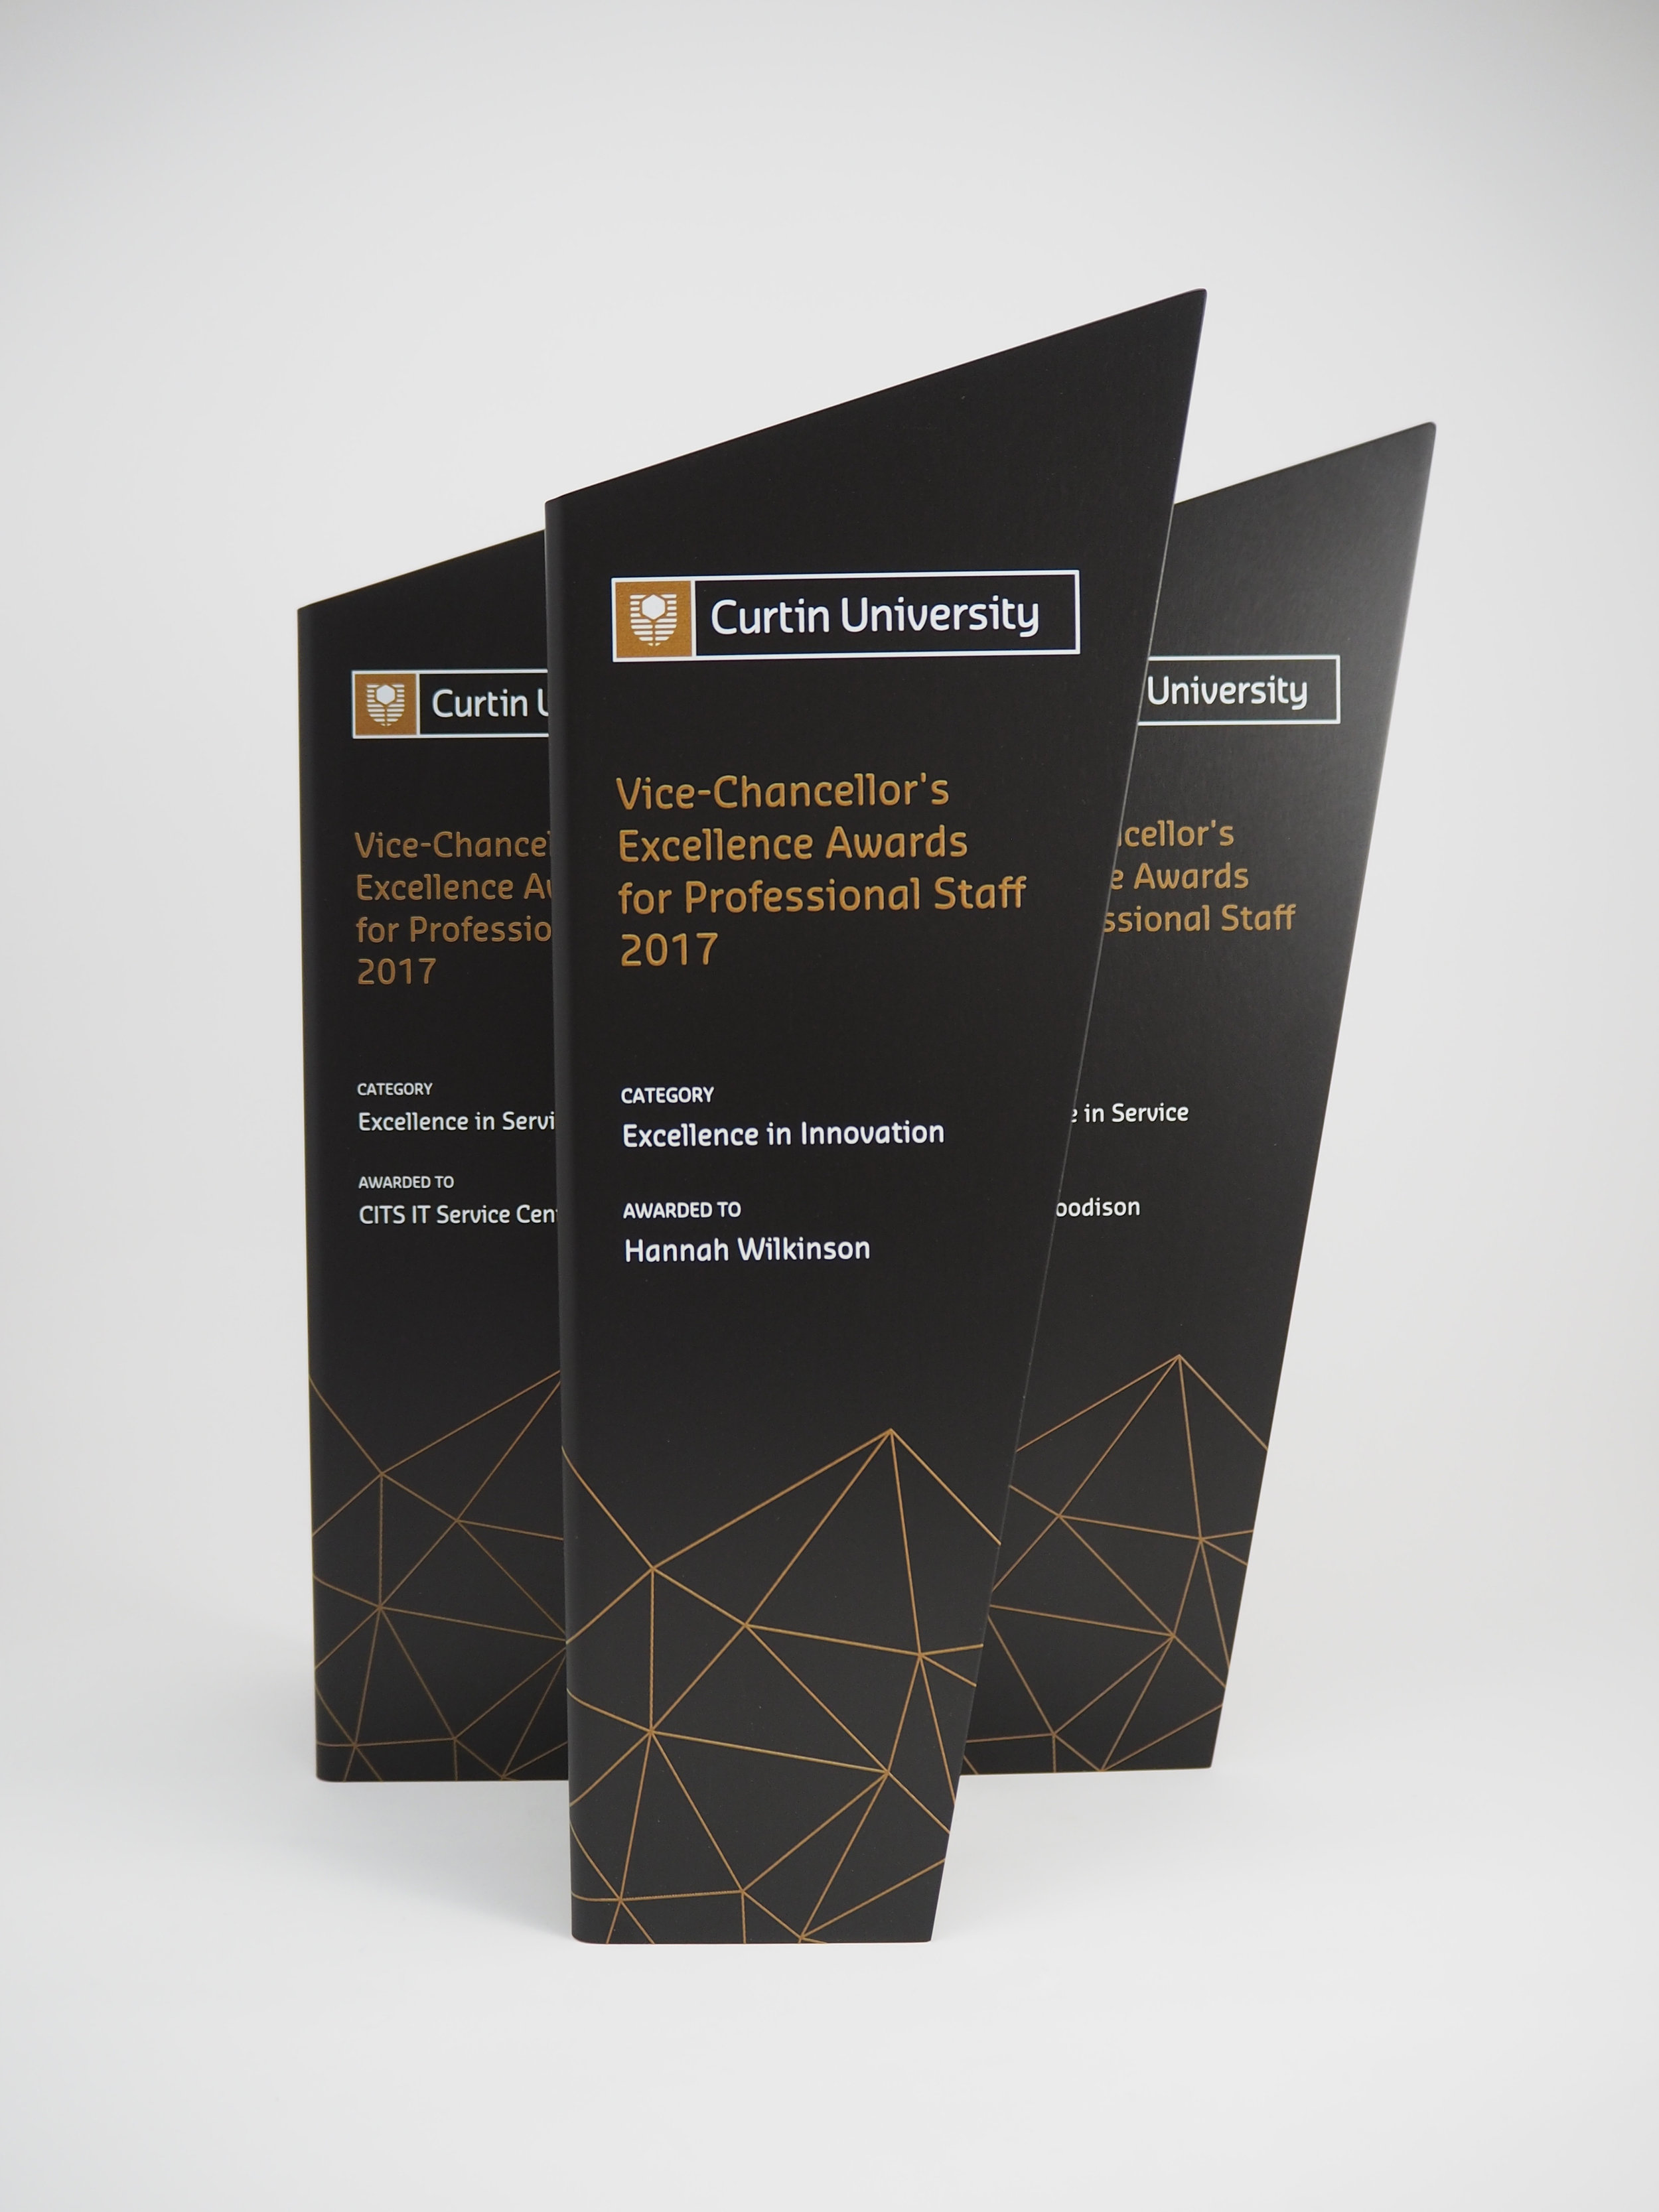 curtin-university-VC-excellence-awards-staff-trophy-03.jpg